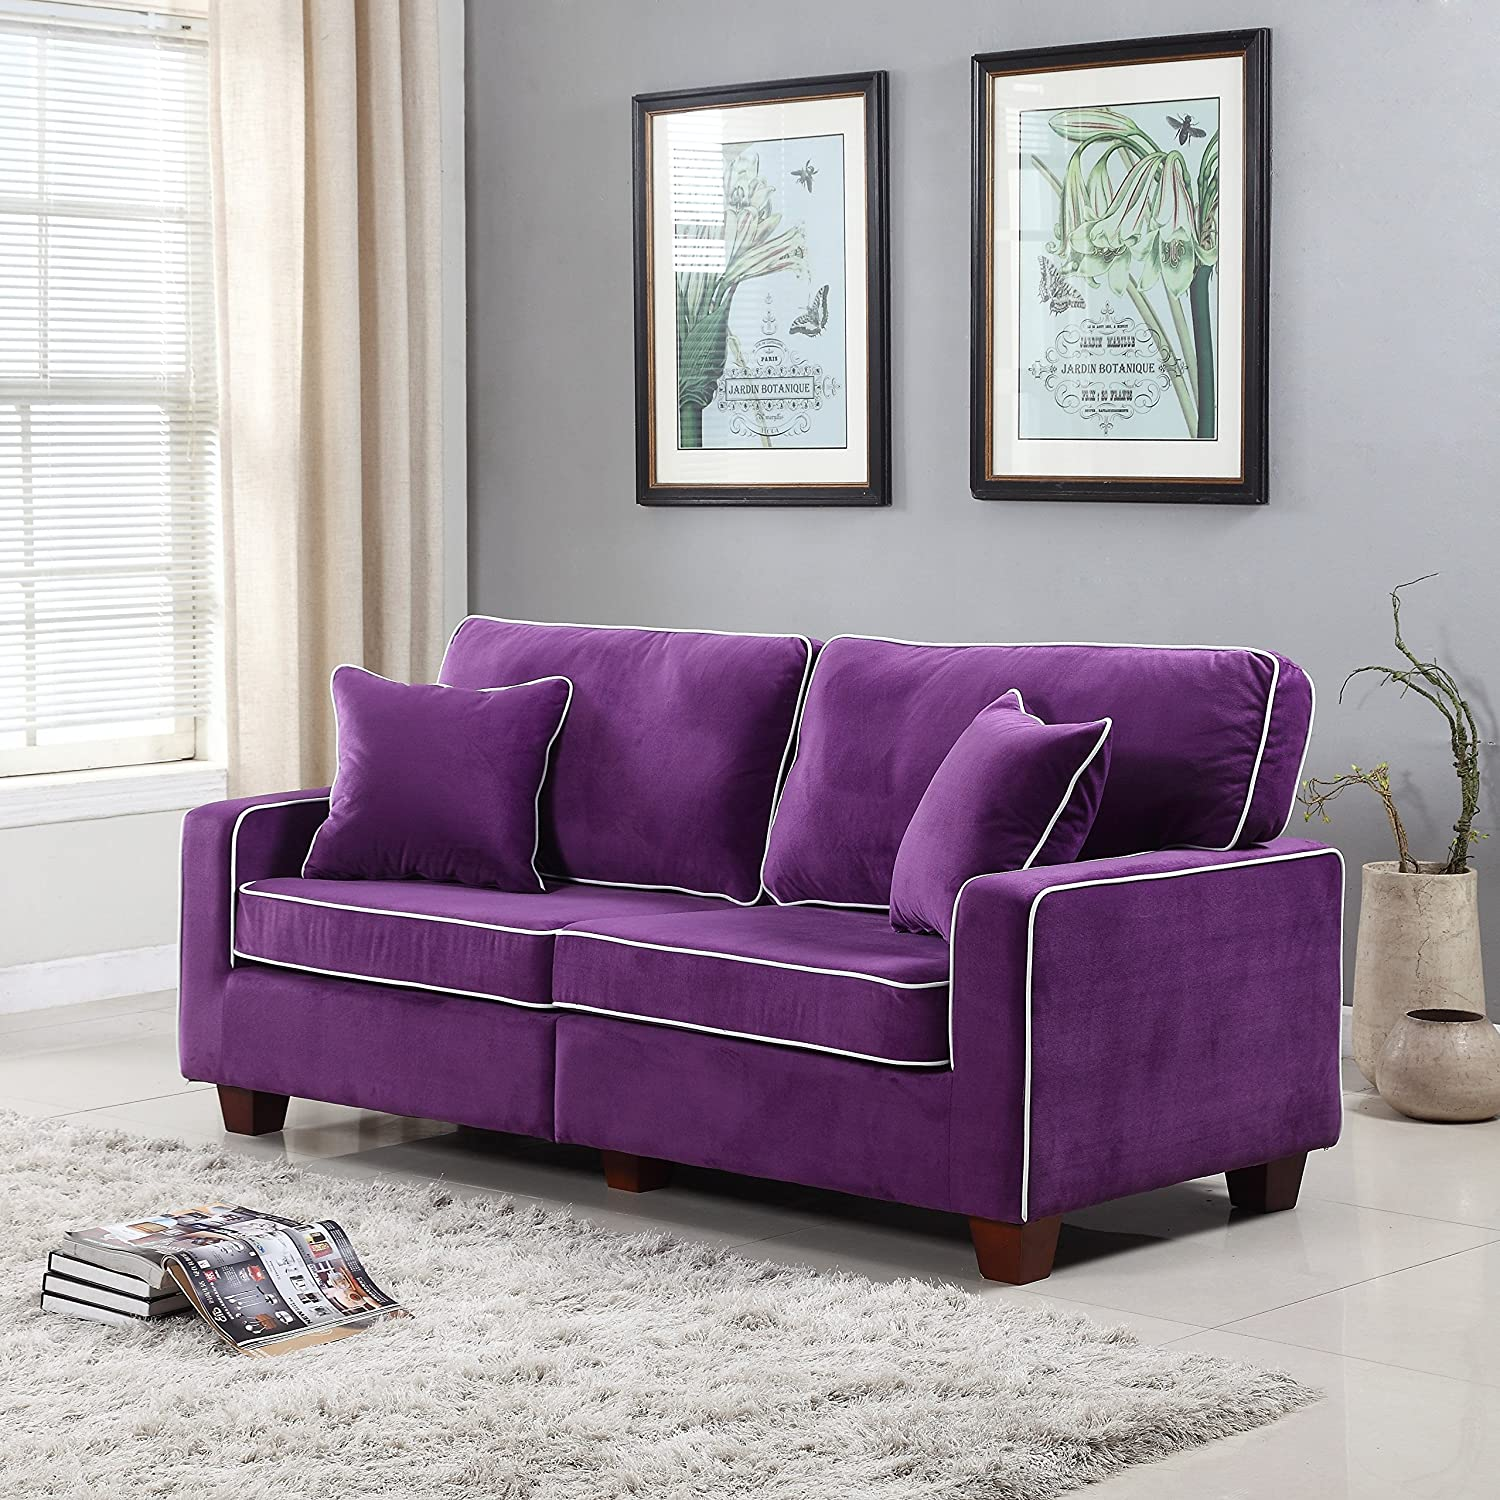 Contemporary ideas purple living room furniture incredible for Furniture collection